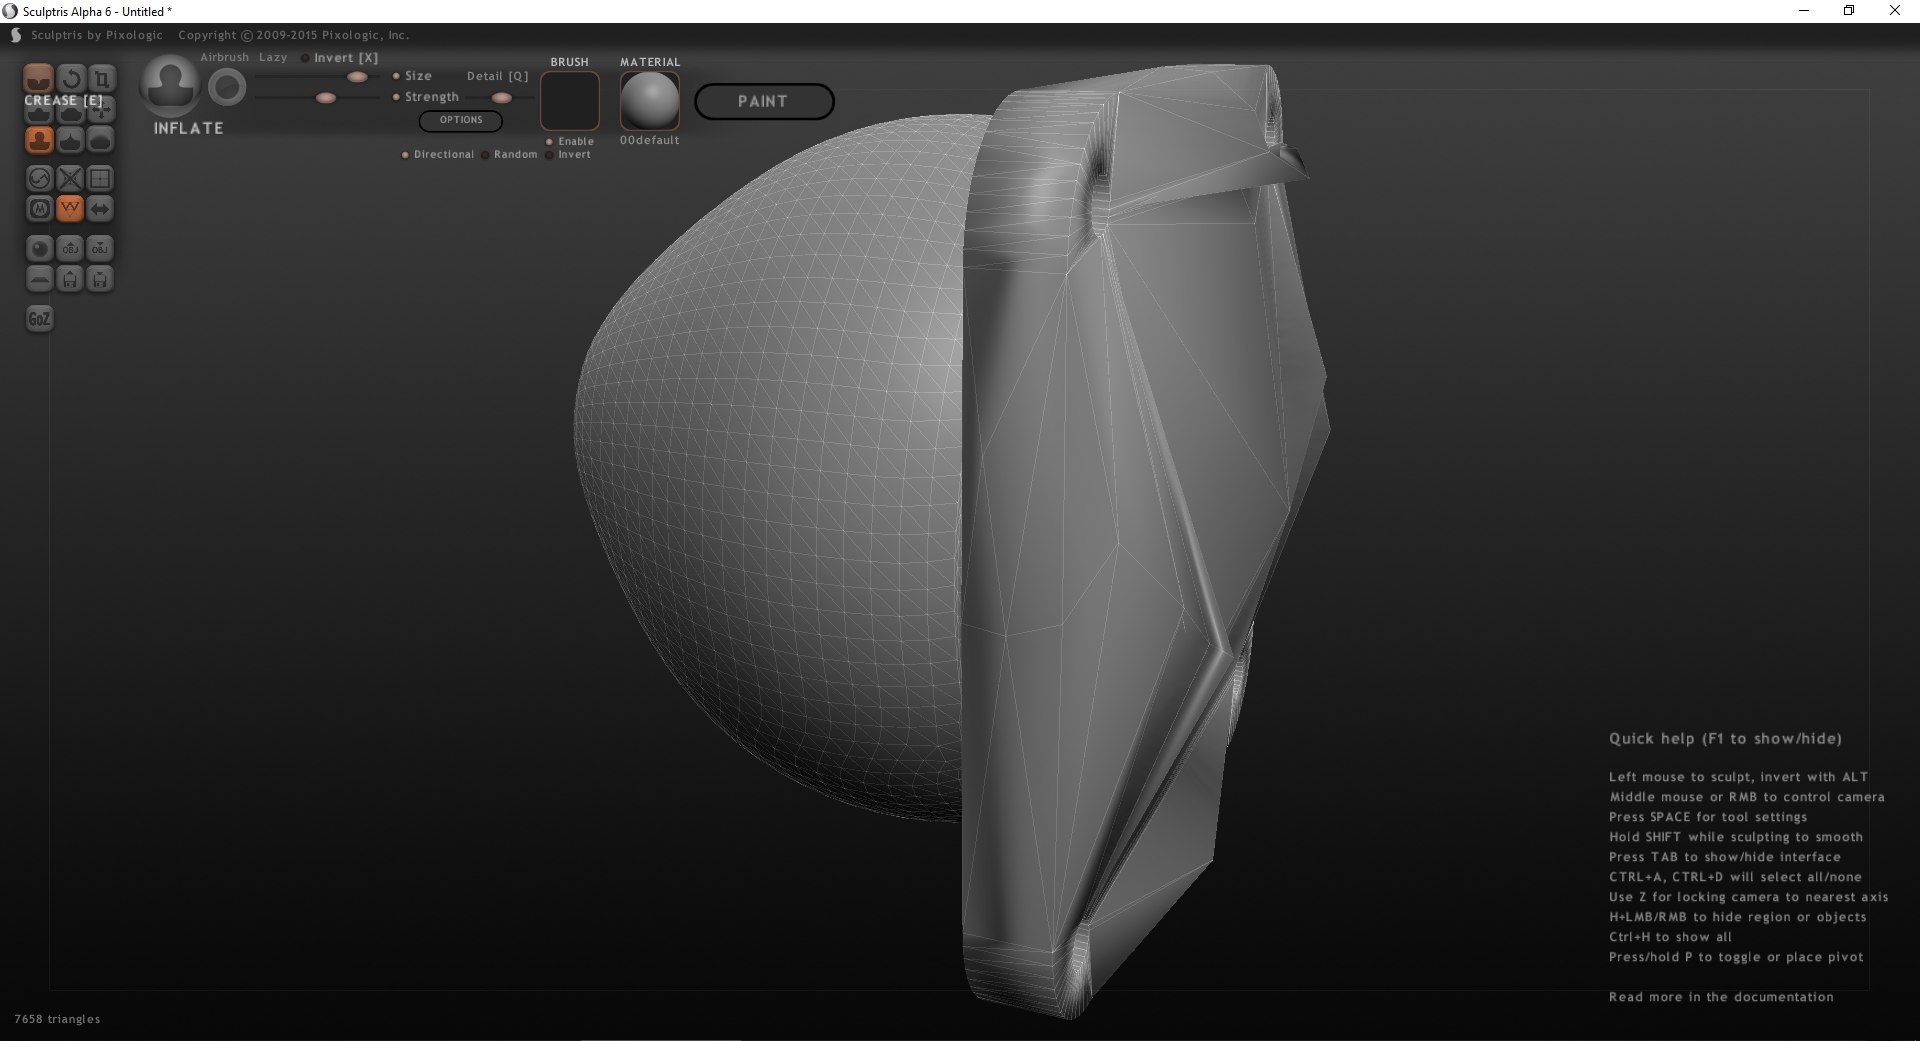 Sculptris: First Impressions and 3D Printing